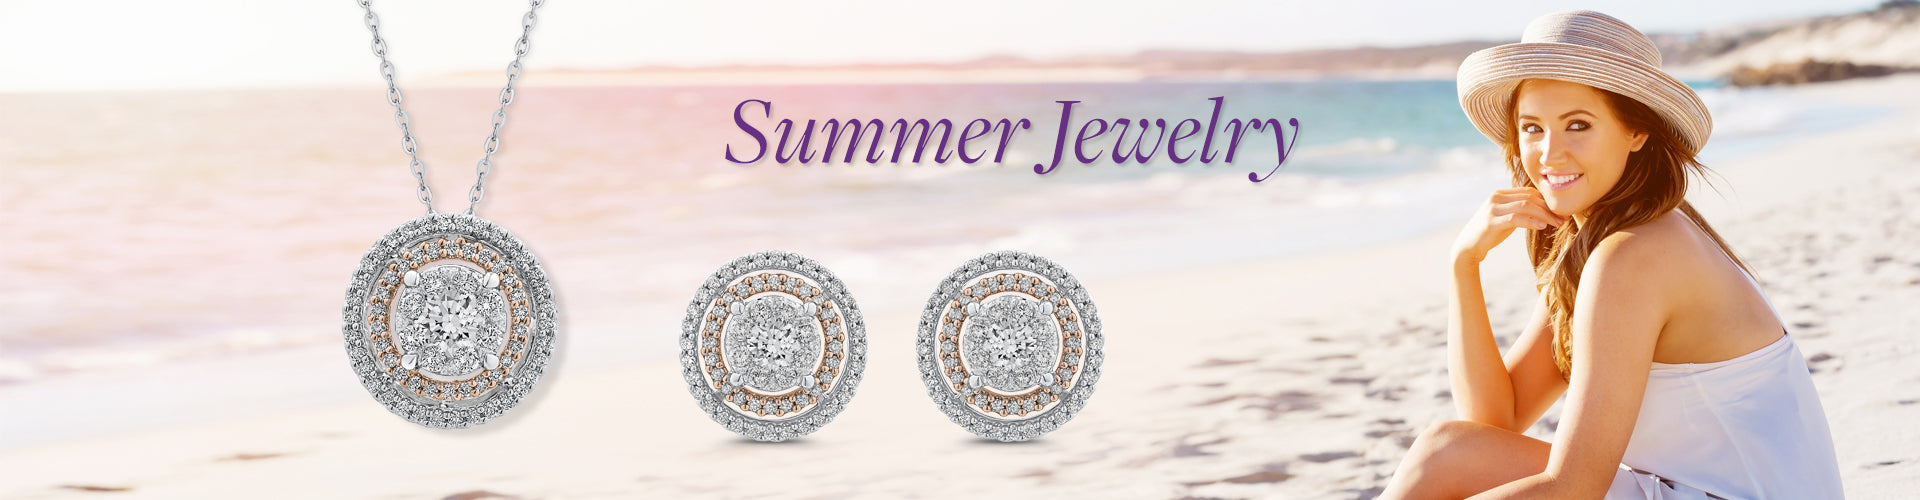 carizza summer jewelry collection necklaces rings bracelets